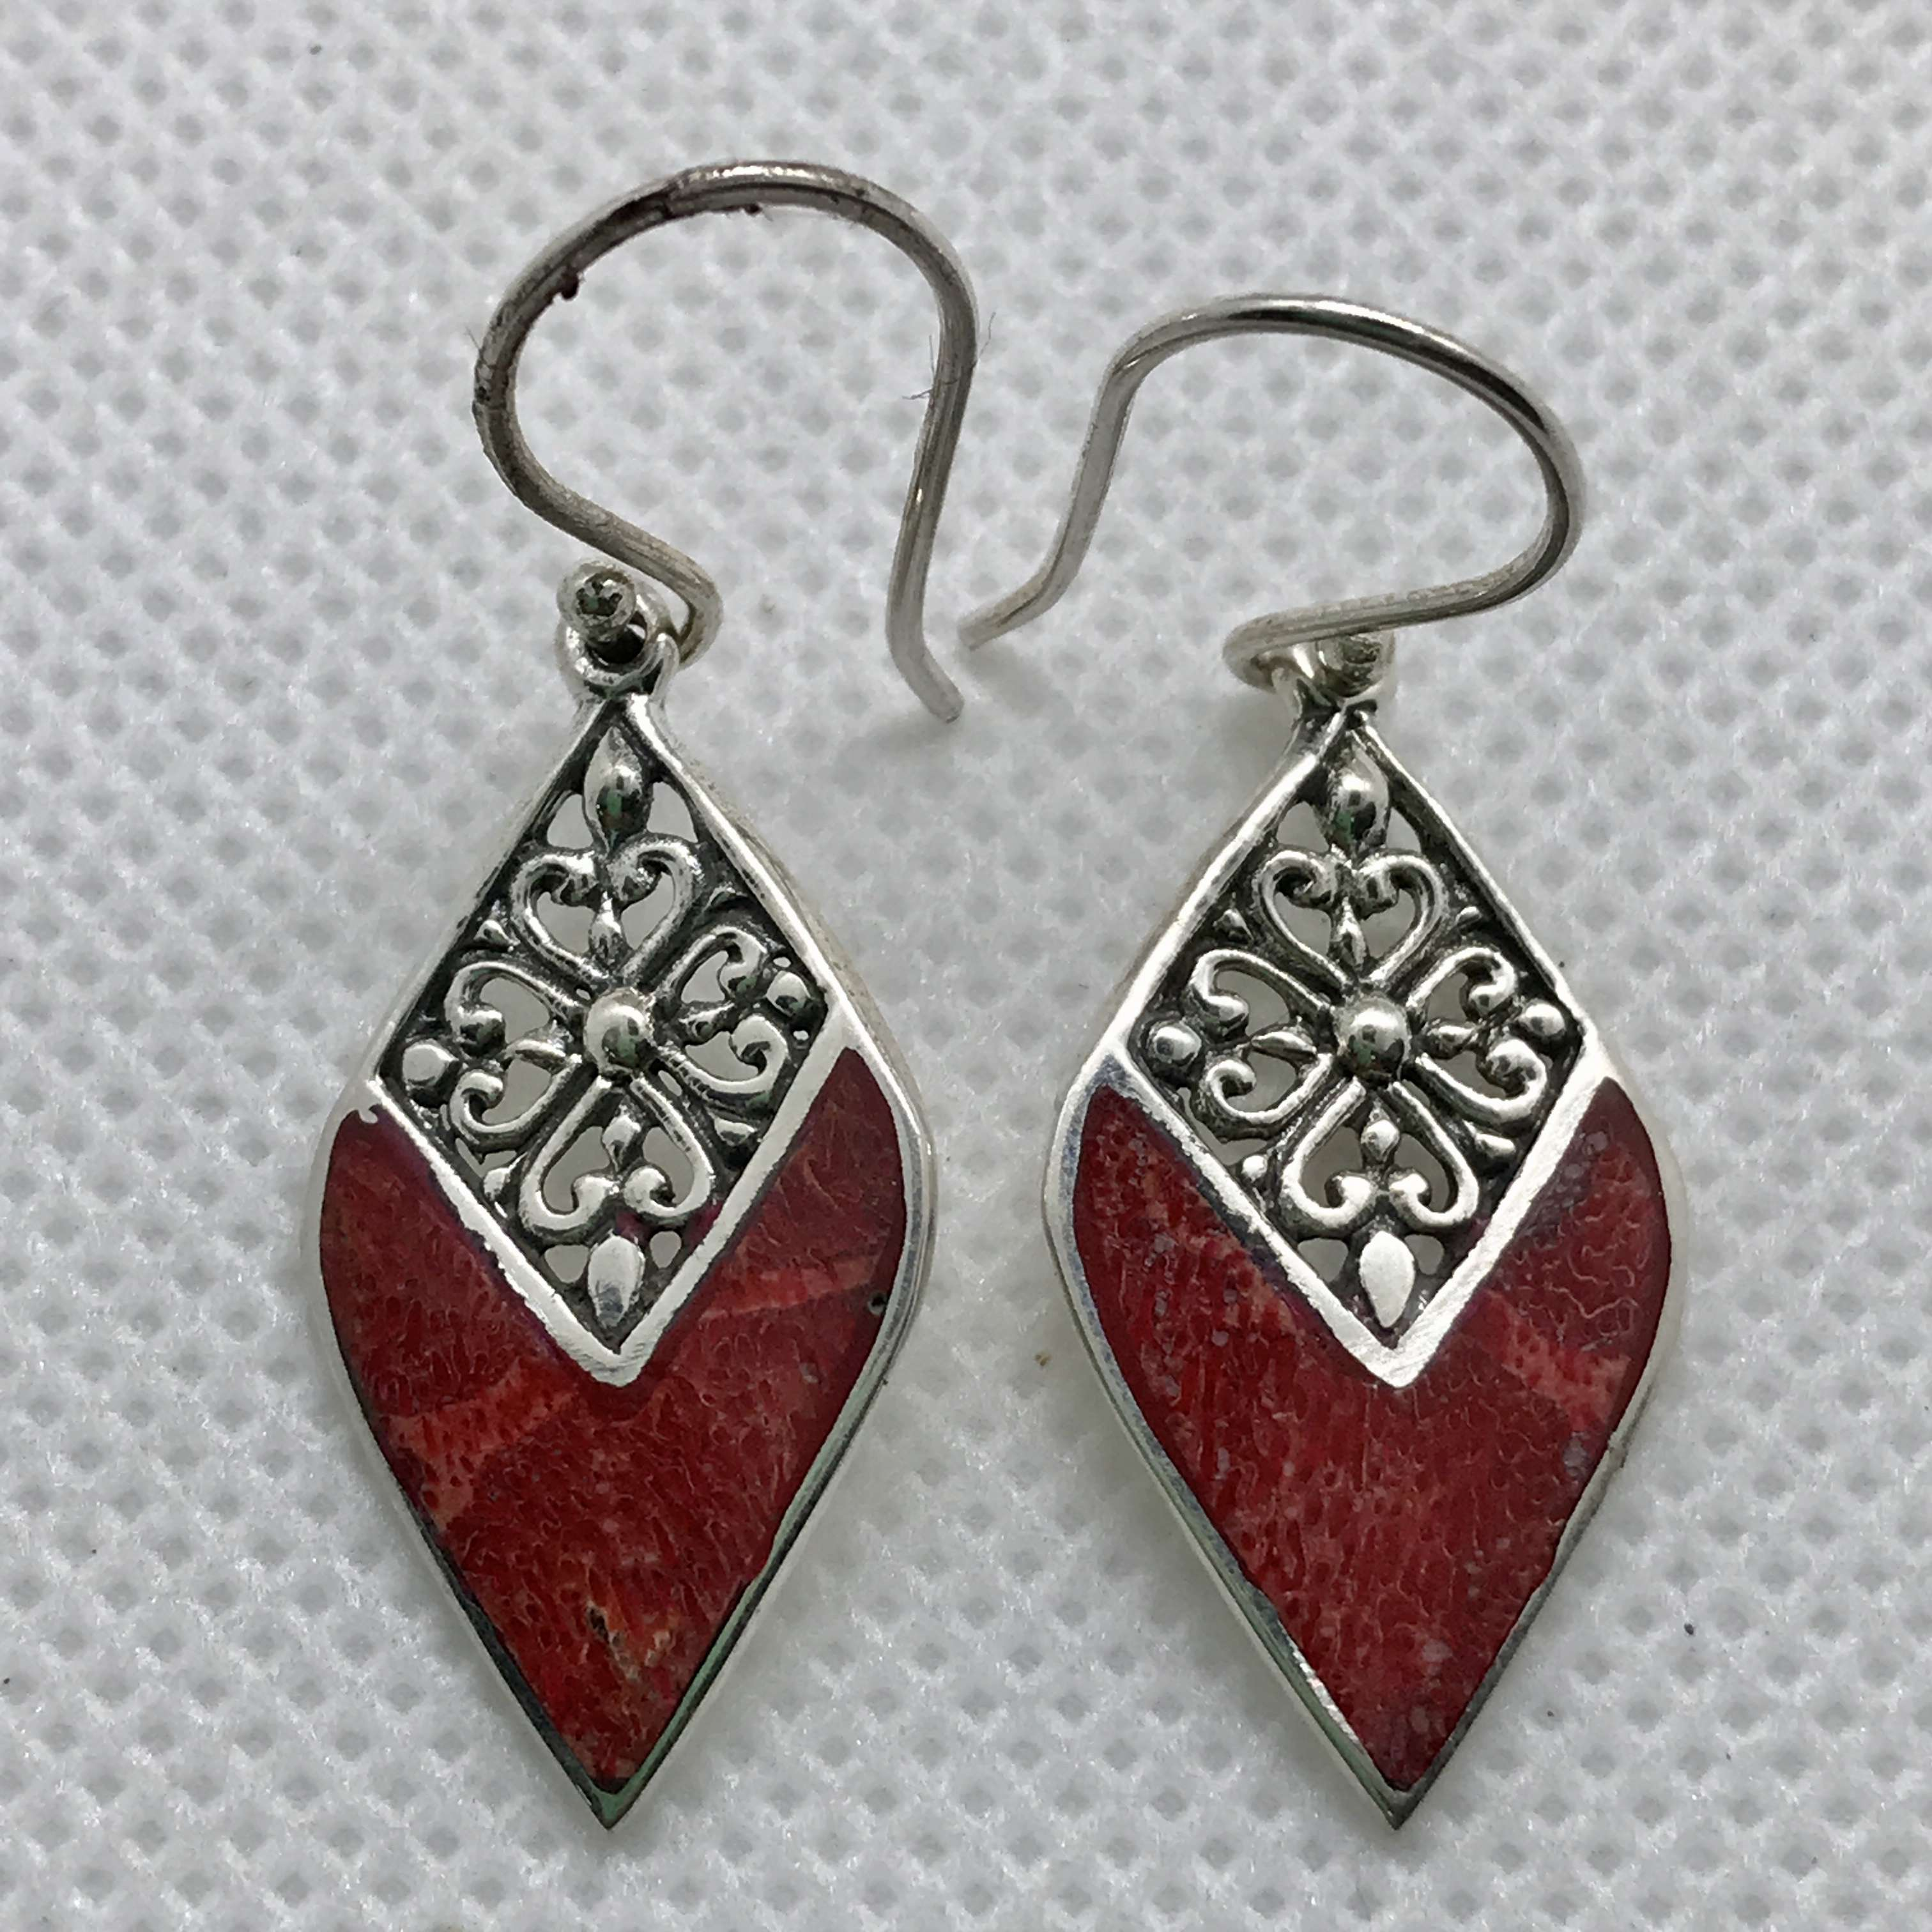 BALI 925 STERLING SILVER EARRINGS WITH CORAL